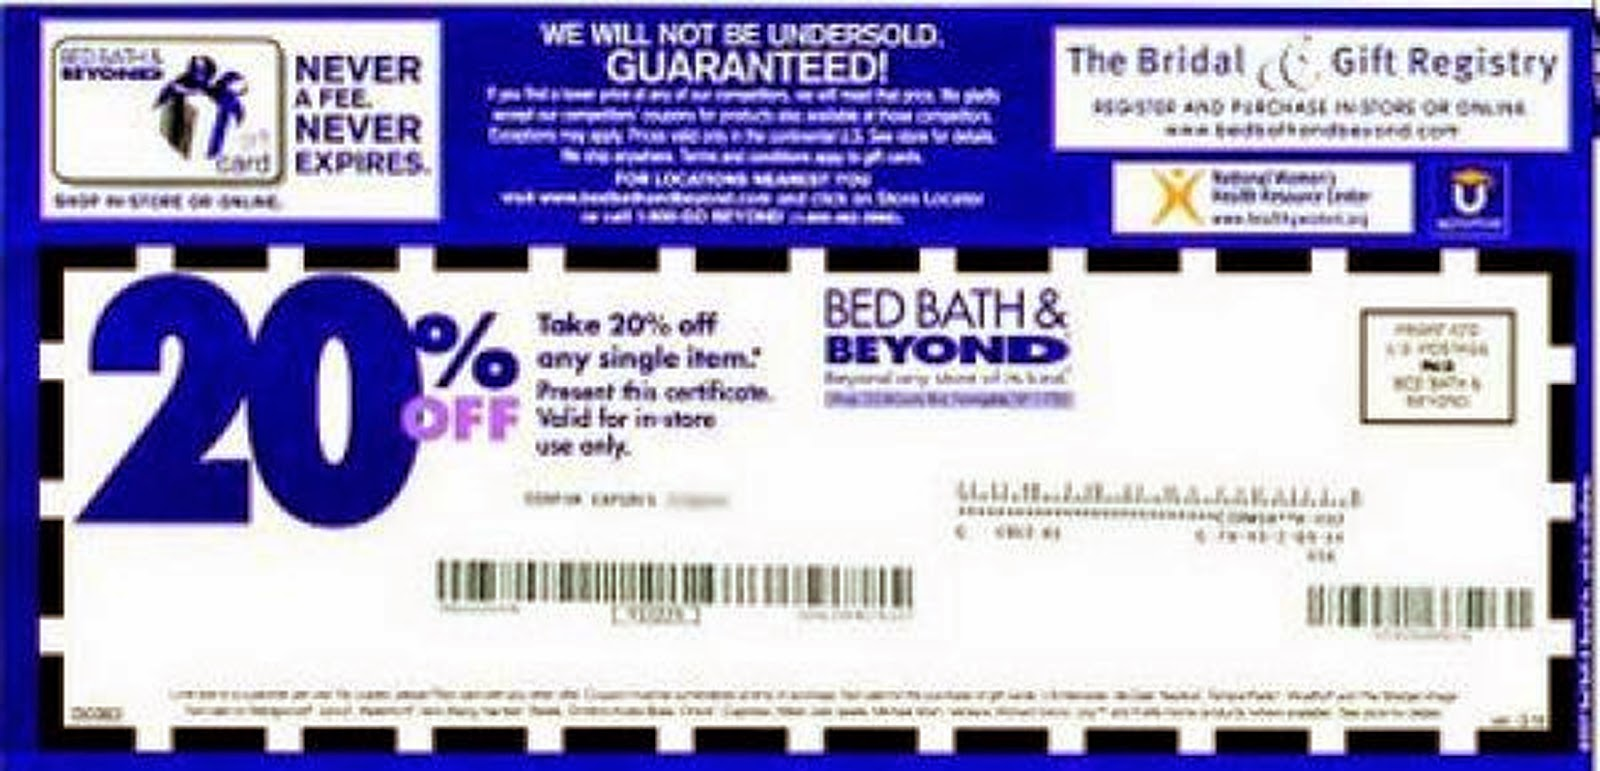 Dyson vacuum cleaners at bed bath and beyond - Lockers School Lockers Metal Lockers Schoollockers Com All Bed Bath Beyond